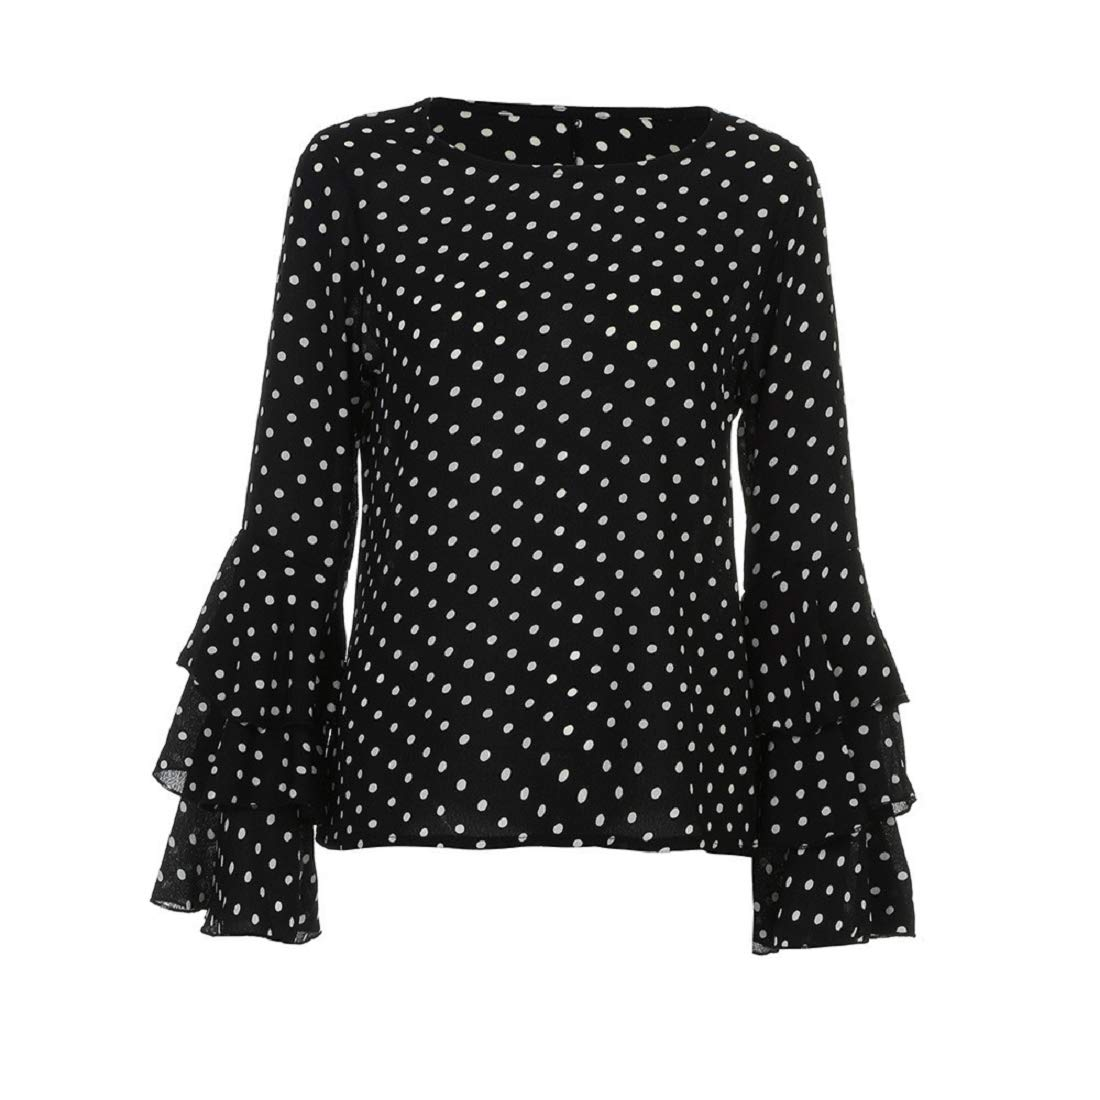 8b94d6ce1a88 GONKOMA Women Cold Shoulder Blouse Pullover Tops Casual Long Sleeve Splice  Shirt T Shirt at Amazon Women's Clothing store: